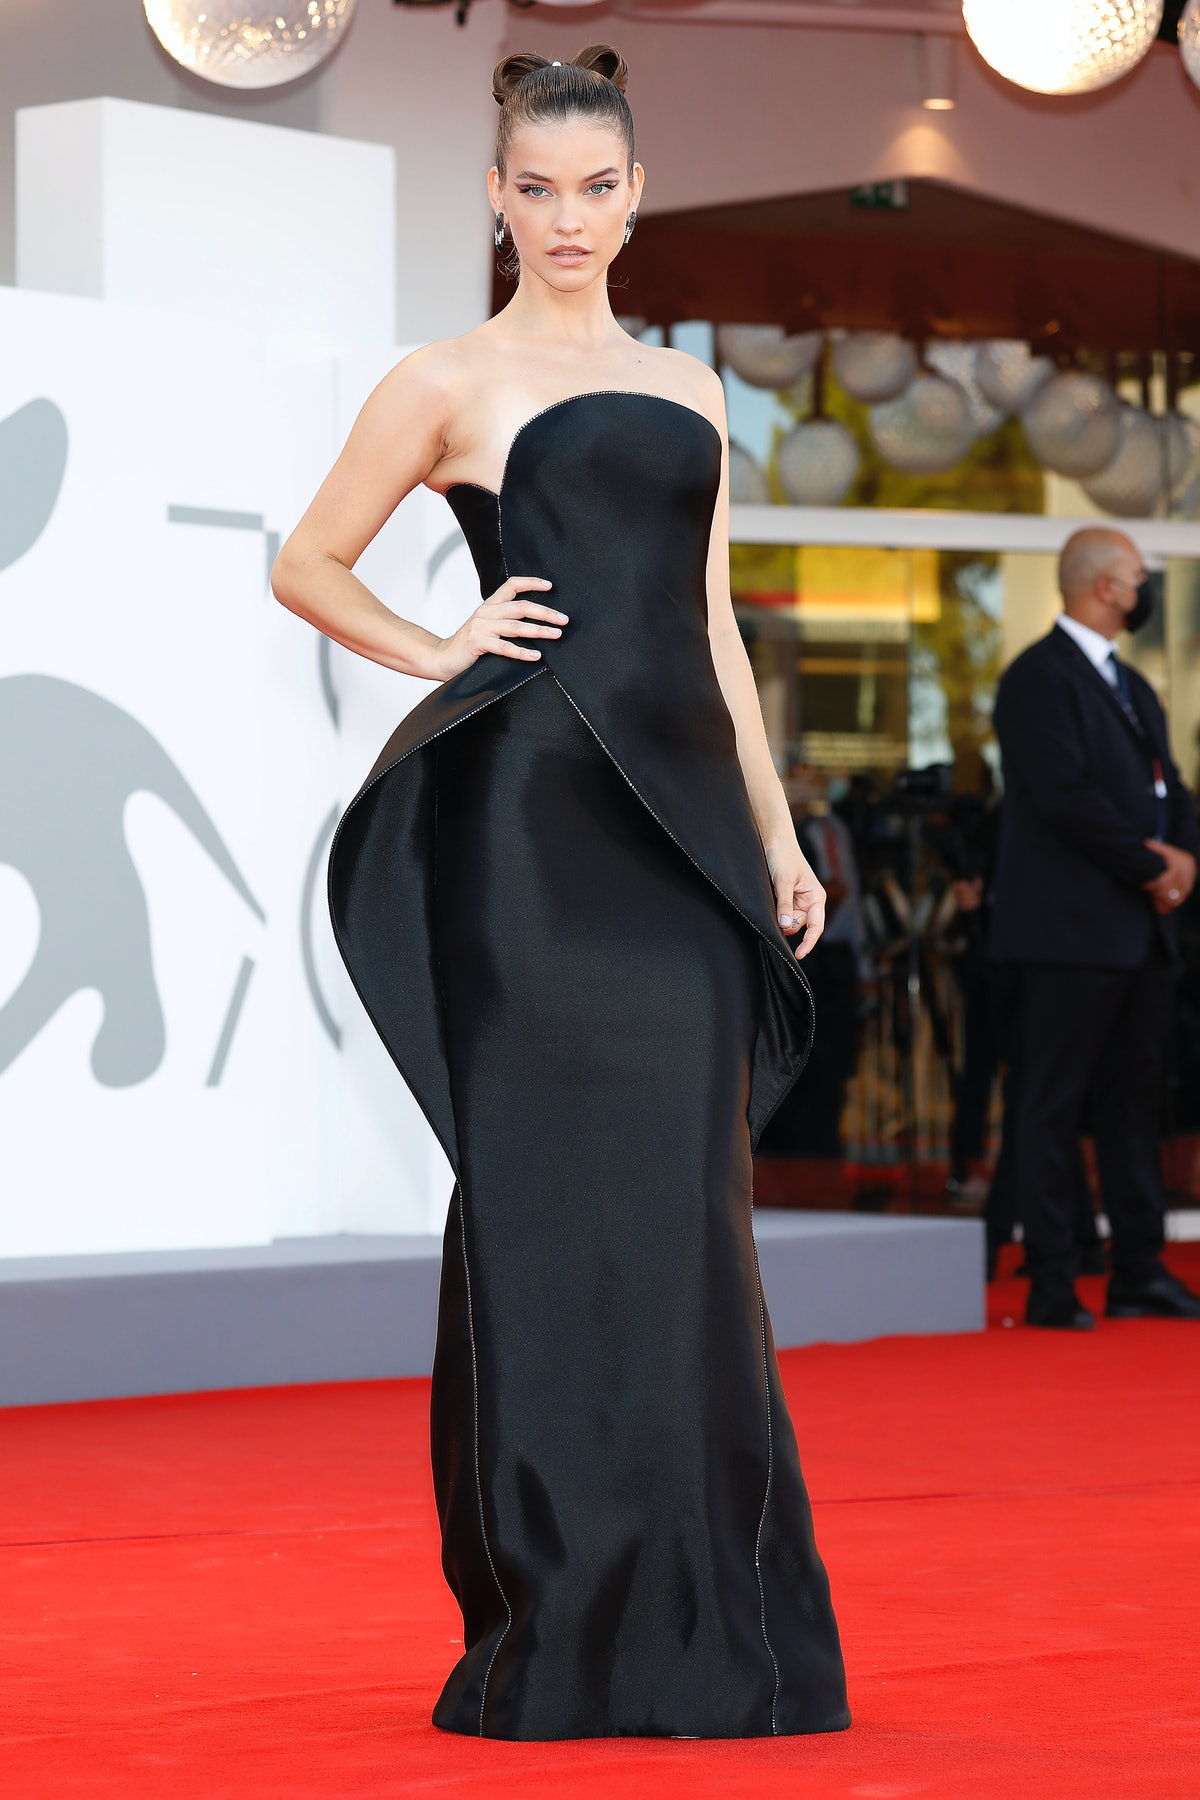 Barbara Palvin at the red carpet of 'Madres Parallels' and Opening Ceremony during the 78th Venice I...